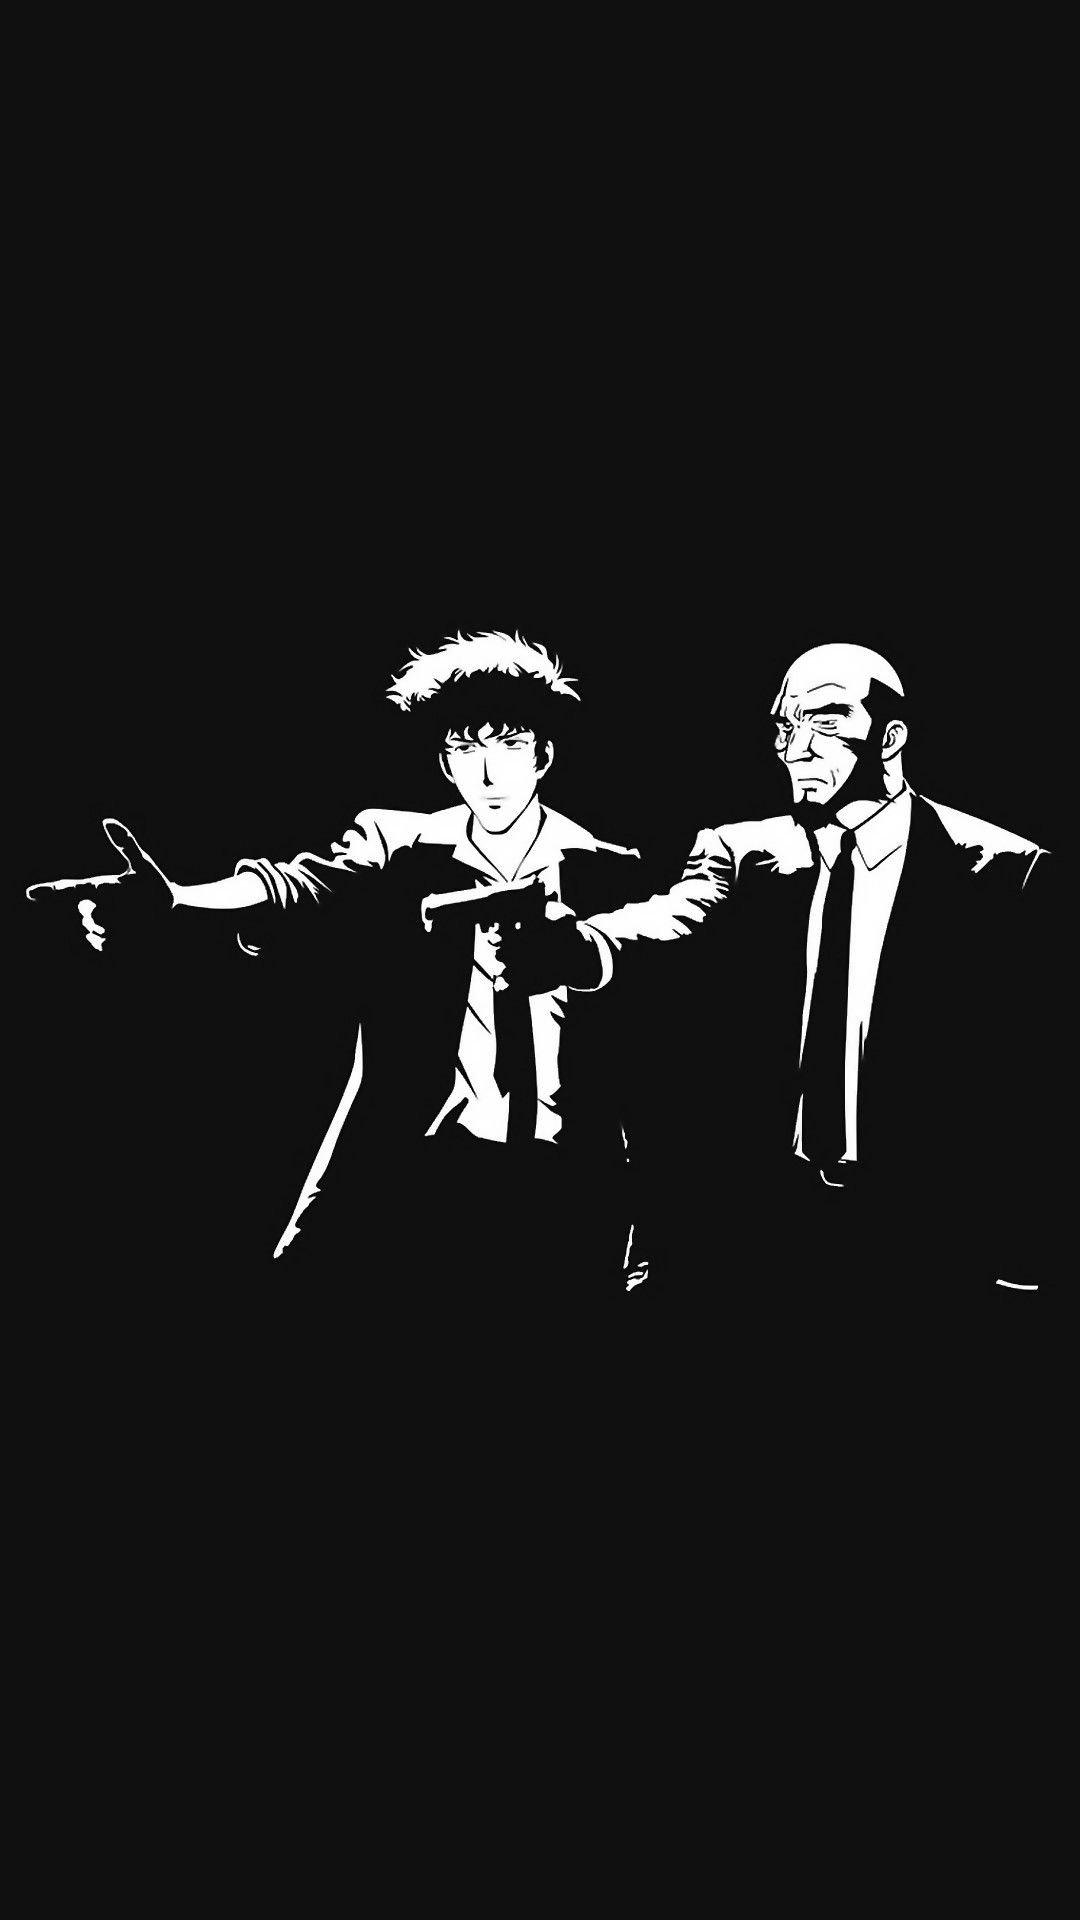 Aesthetic The Weeknd Android Background Cowboy Bebop Cowboy Bebop Anime Cowboy Bebop Wallpapers